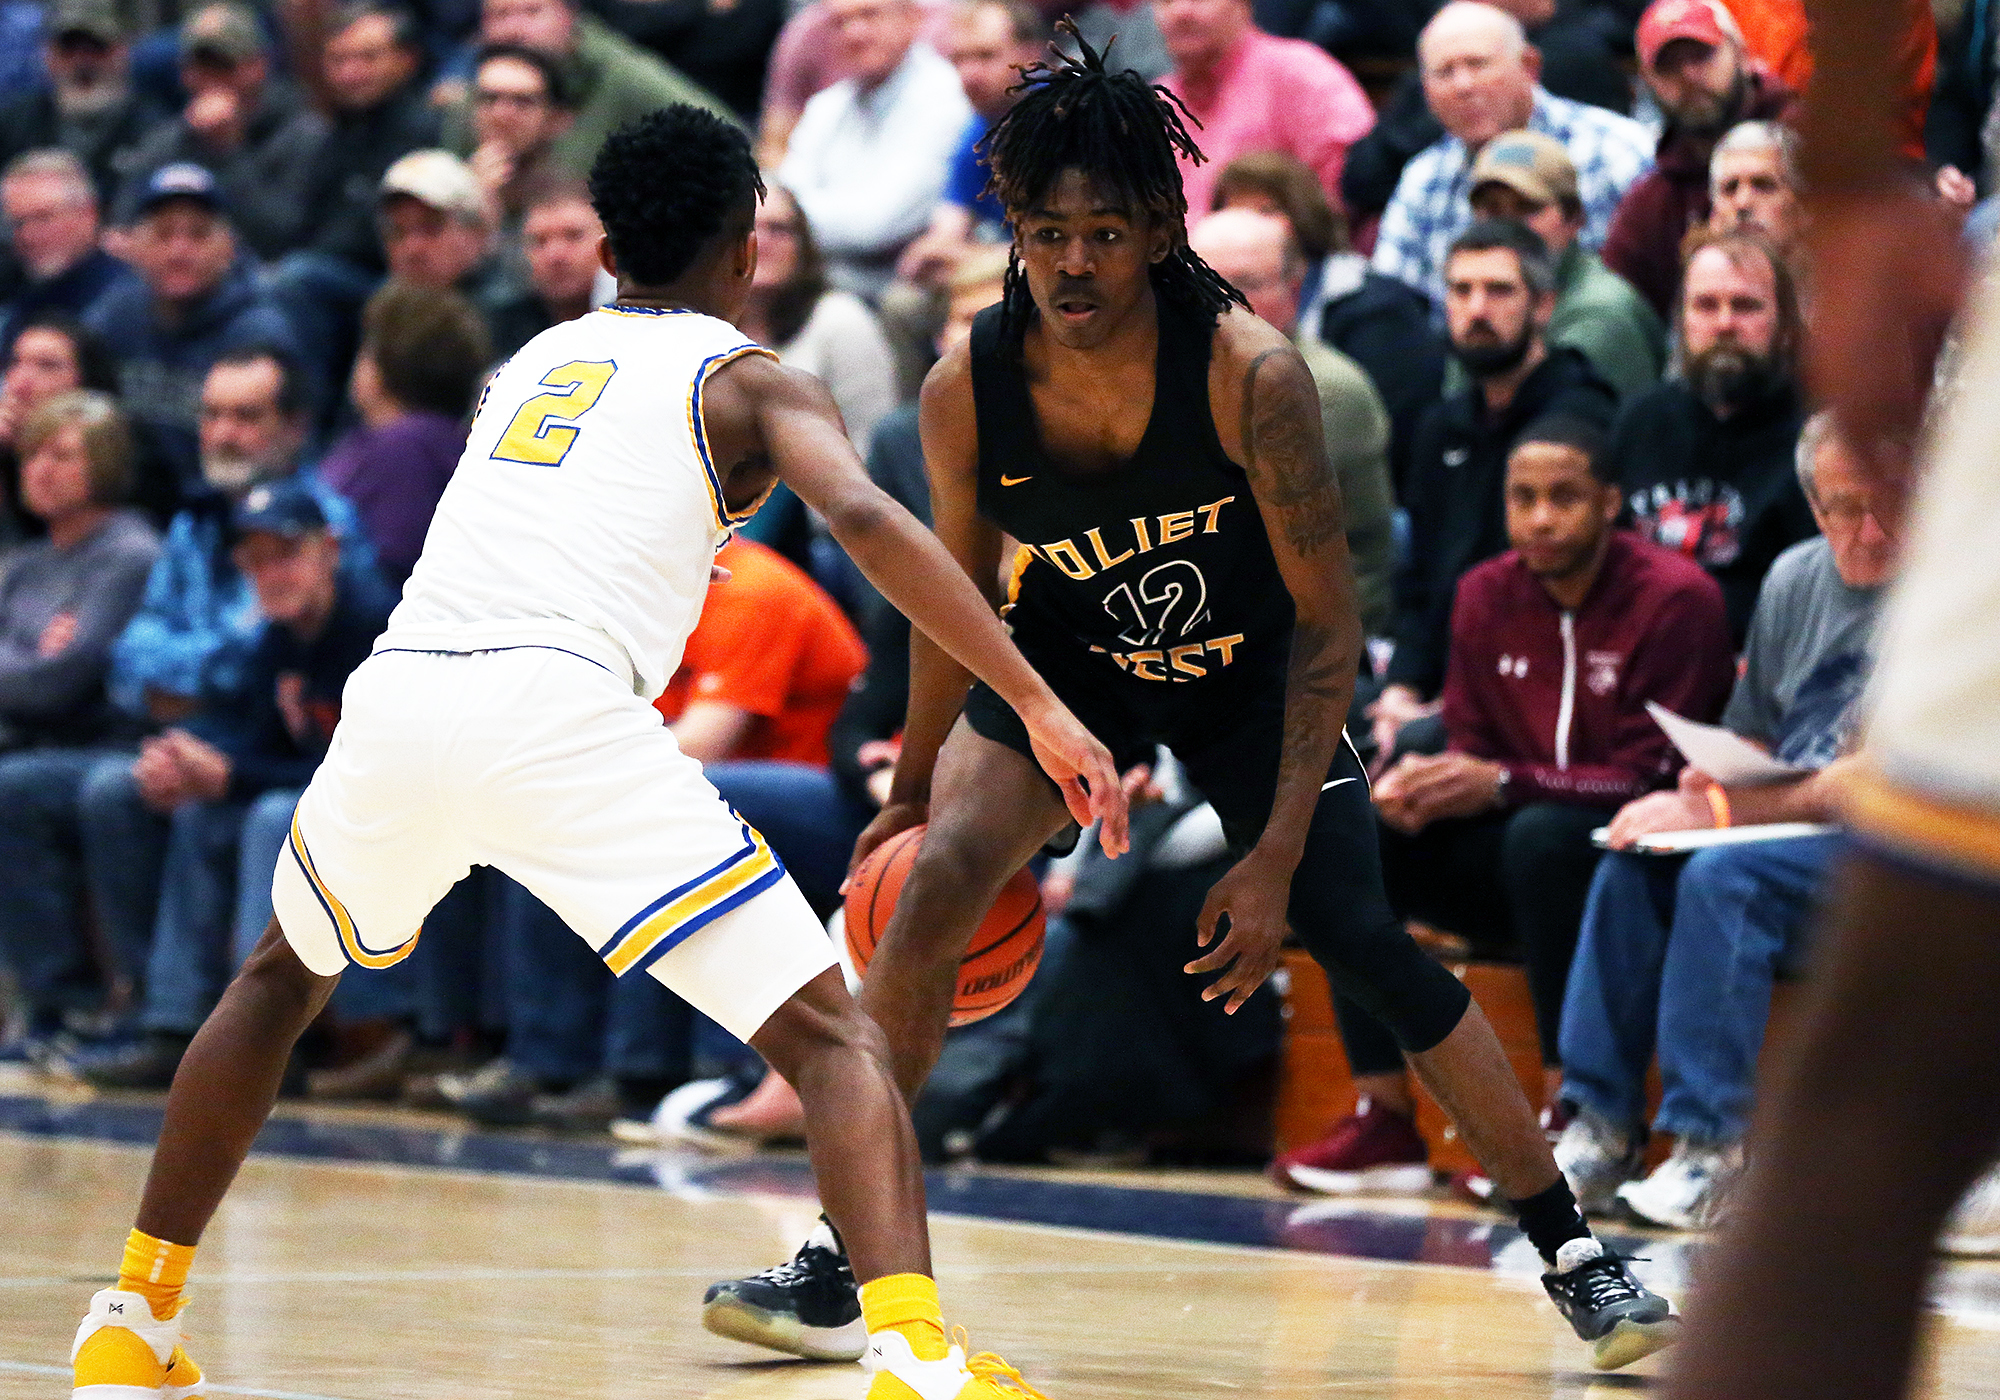 Joliet West's Jamere Hill (12) looks to beat Simeon's Jalen Hill off the dribble.